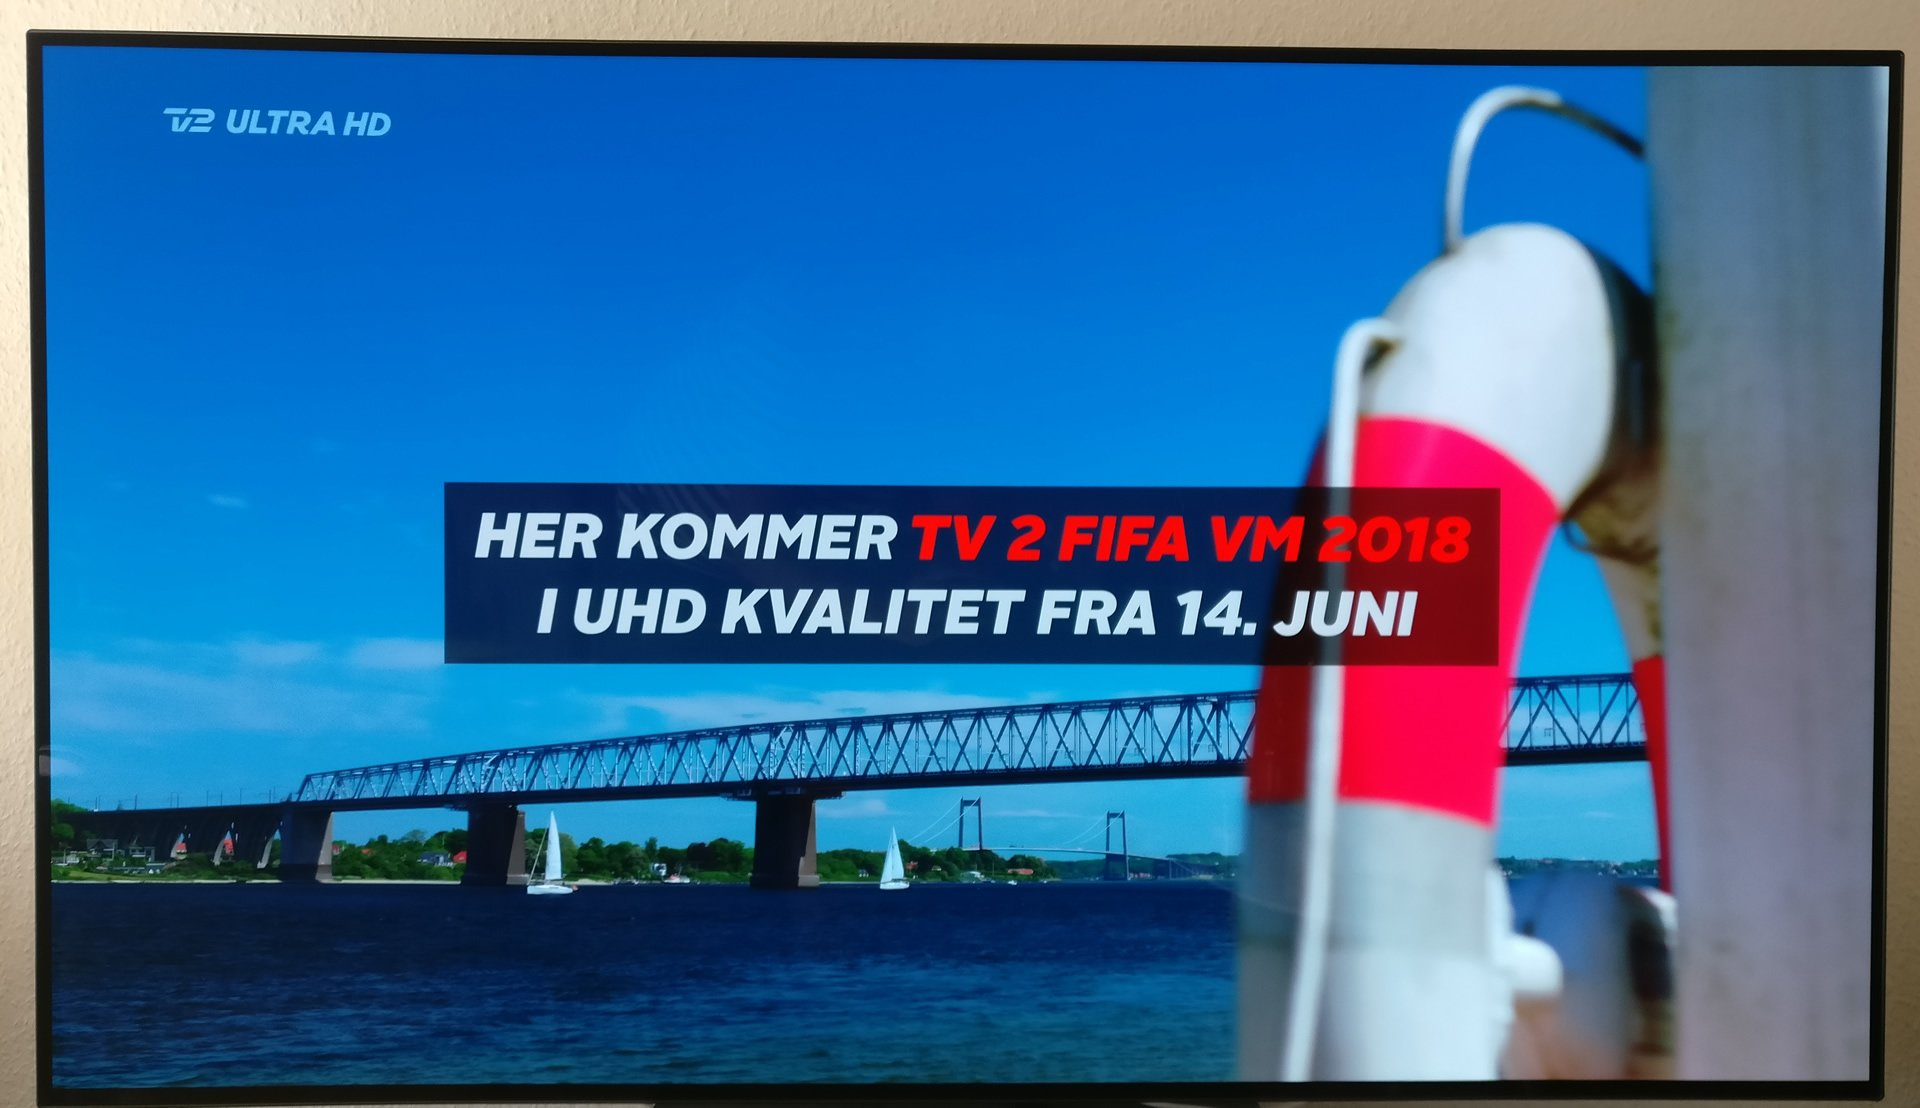 TV 2 Ultra HD YouSee